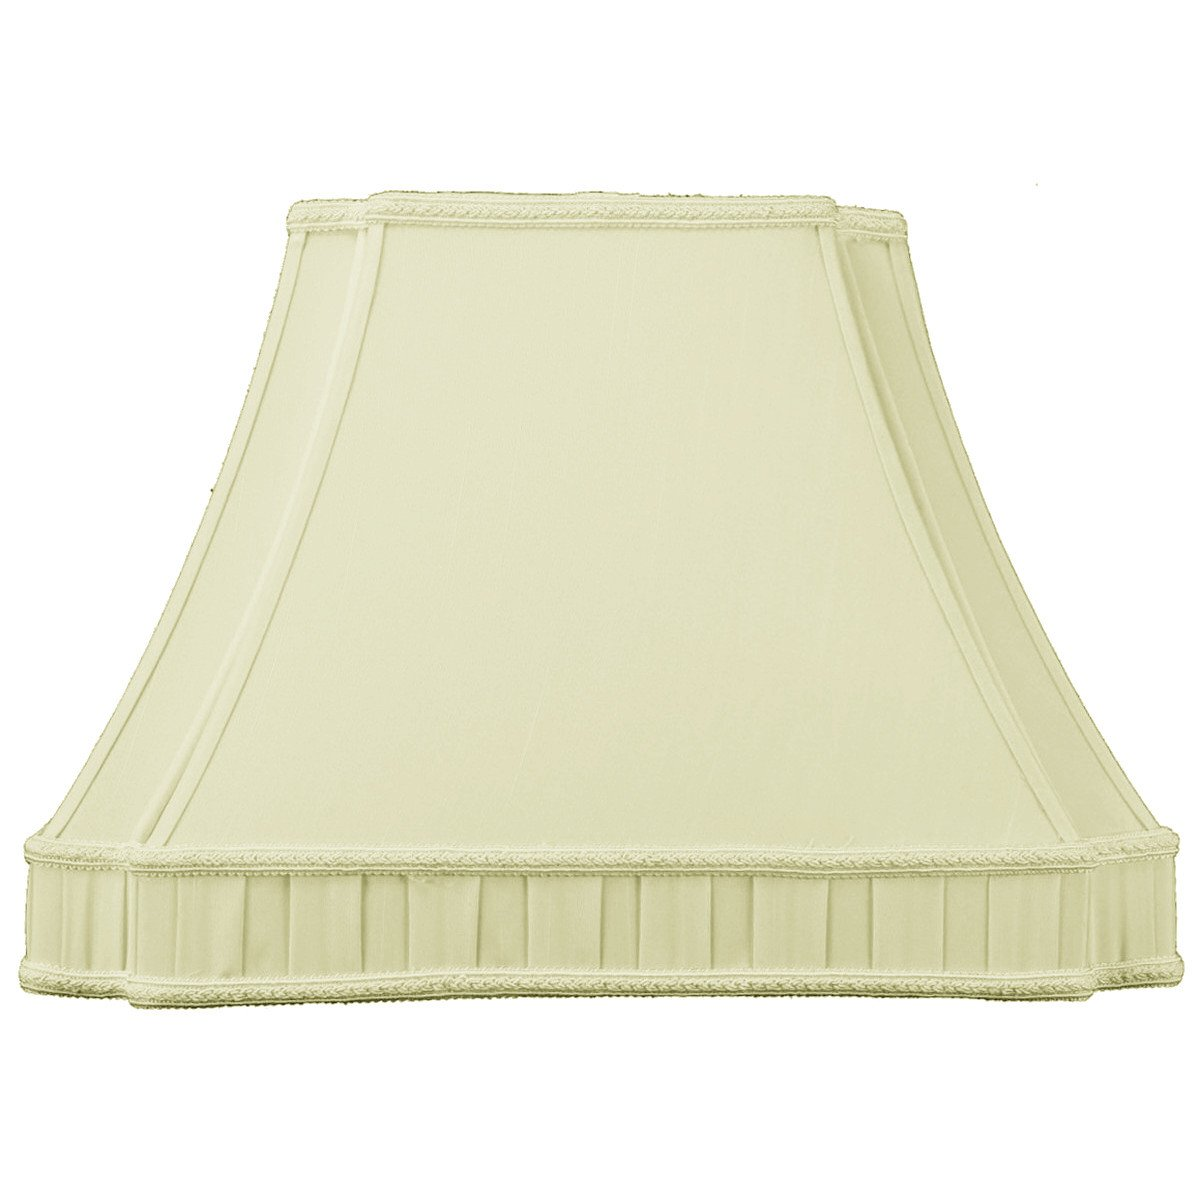 7x15x12 Eggshell Lampshade with Off White Liner with Brass Spider Fitter By Home Concept - Perfect for small table lamps, desk lamps, and accent lights - Medium,Egg Shell